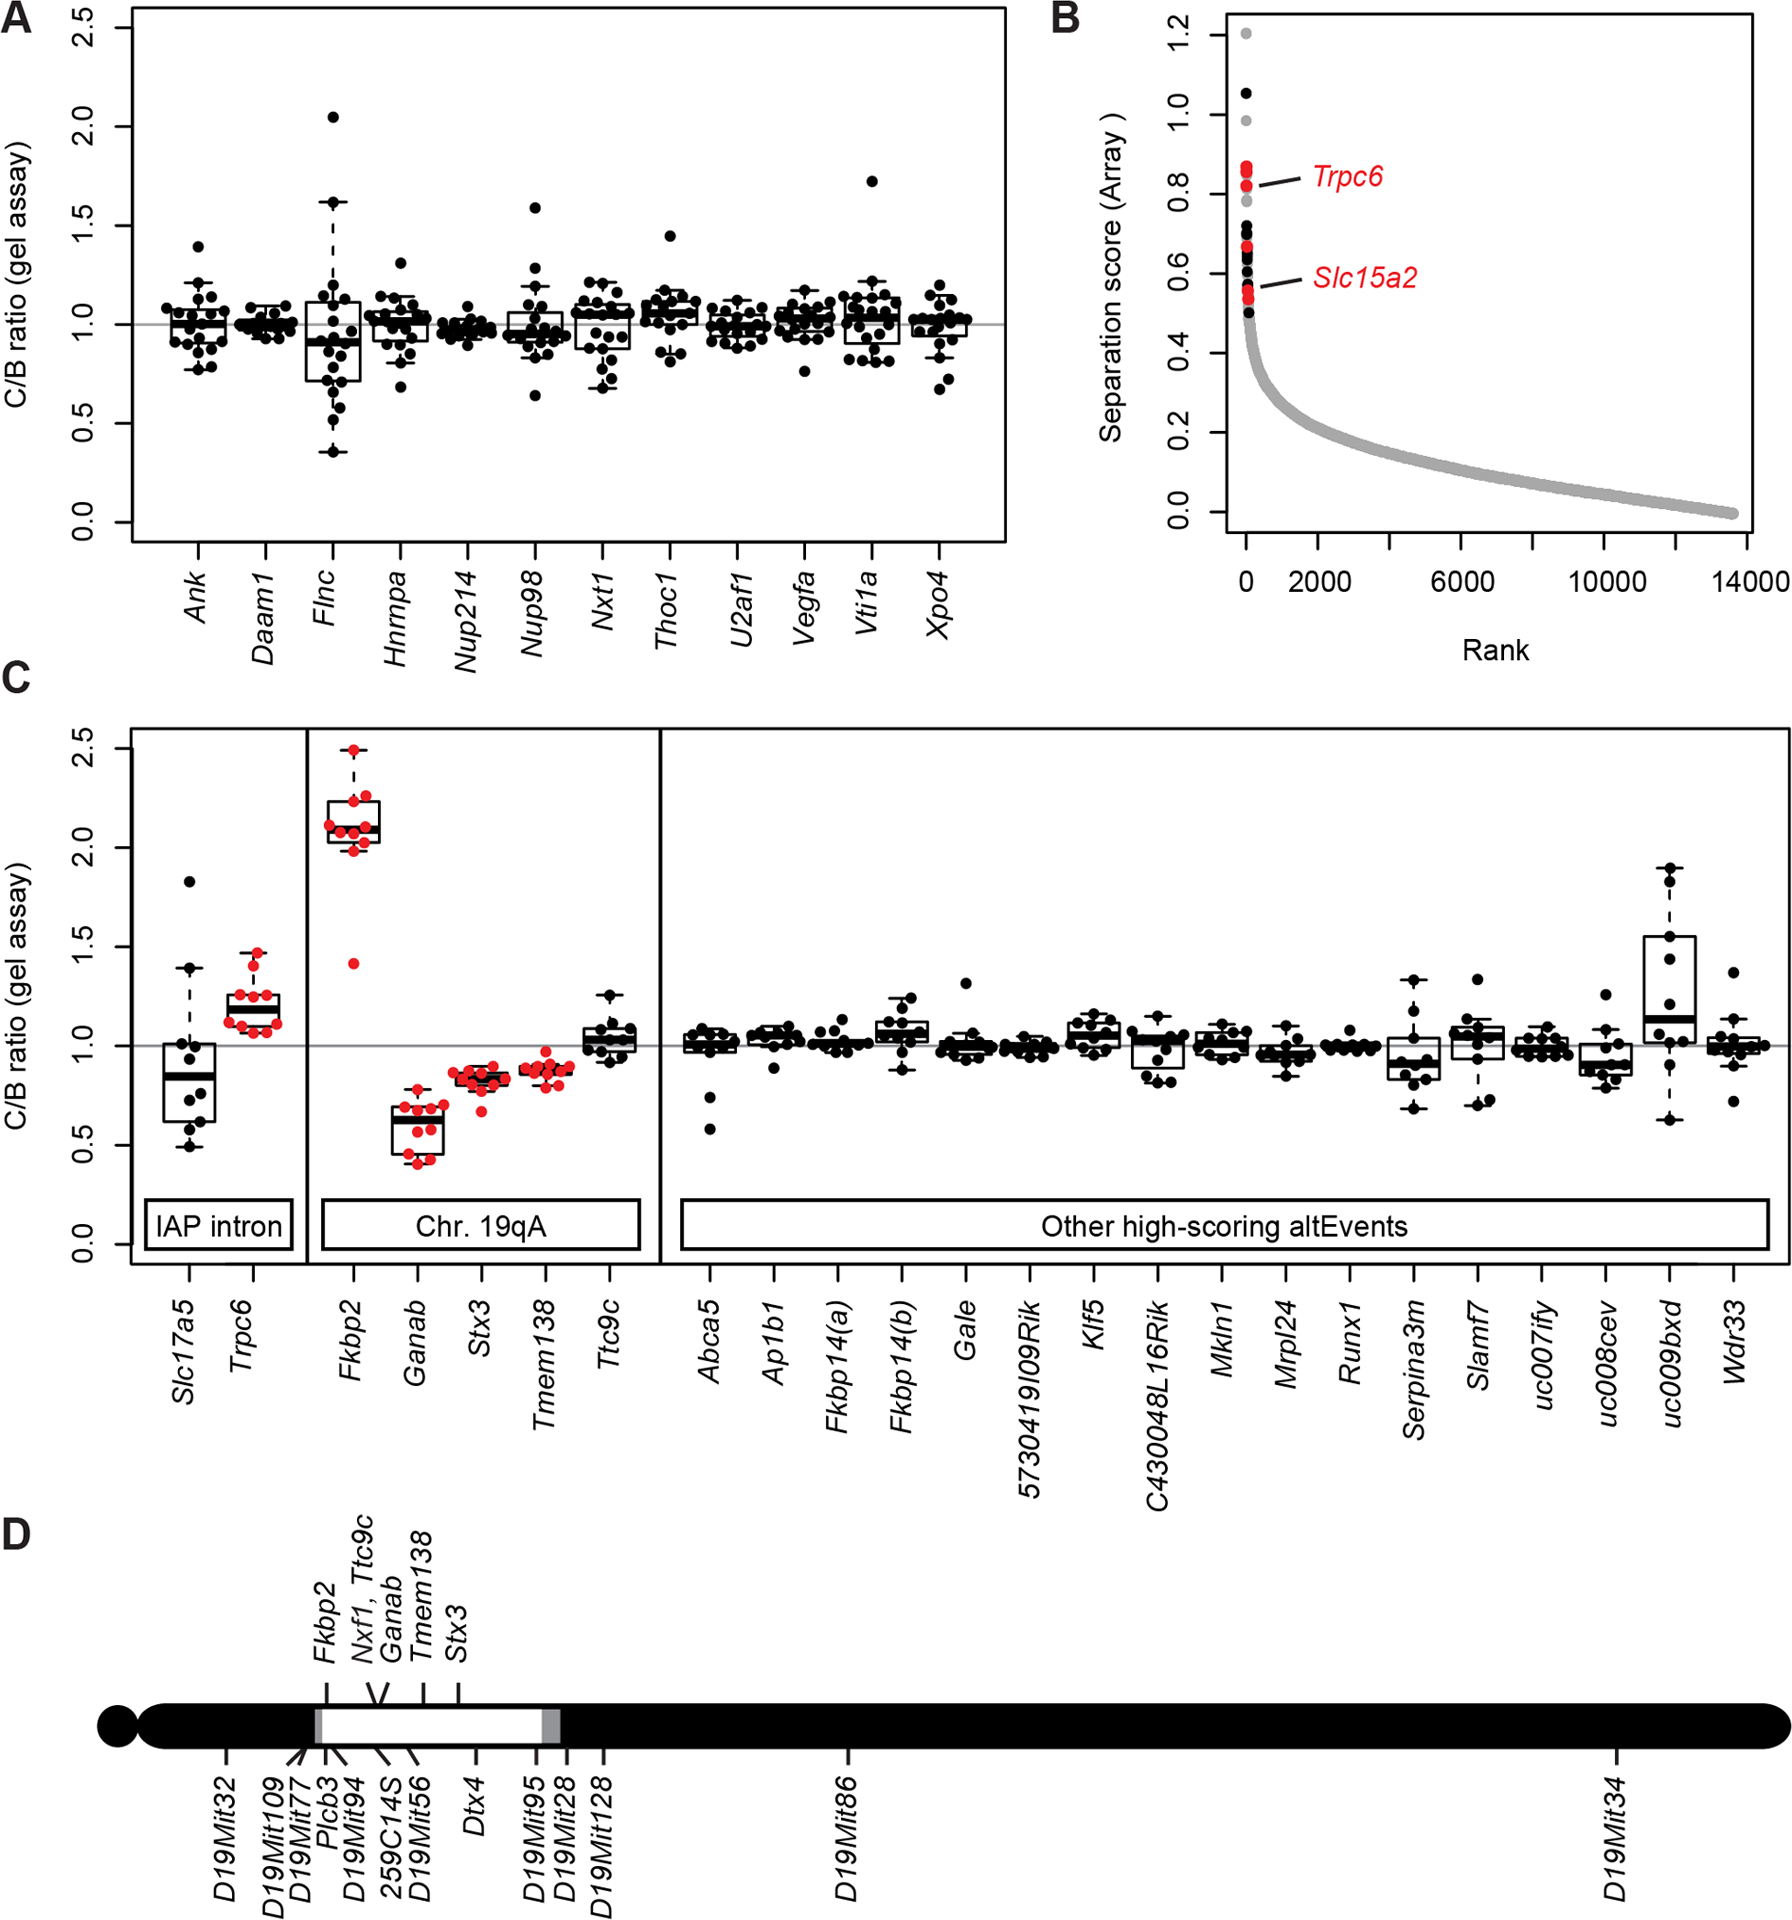 Nxf1 alleles do not affect alternative processing at non-IAP sites.